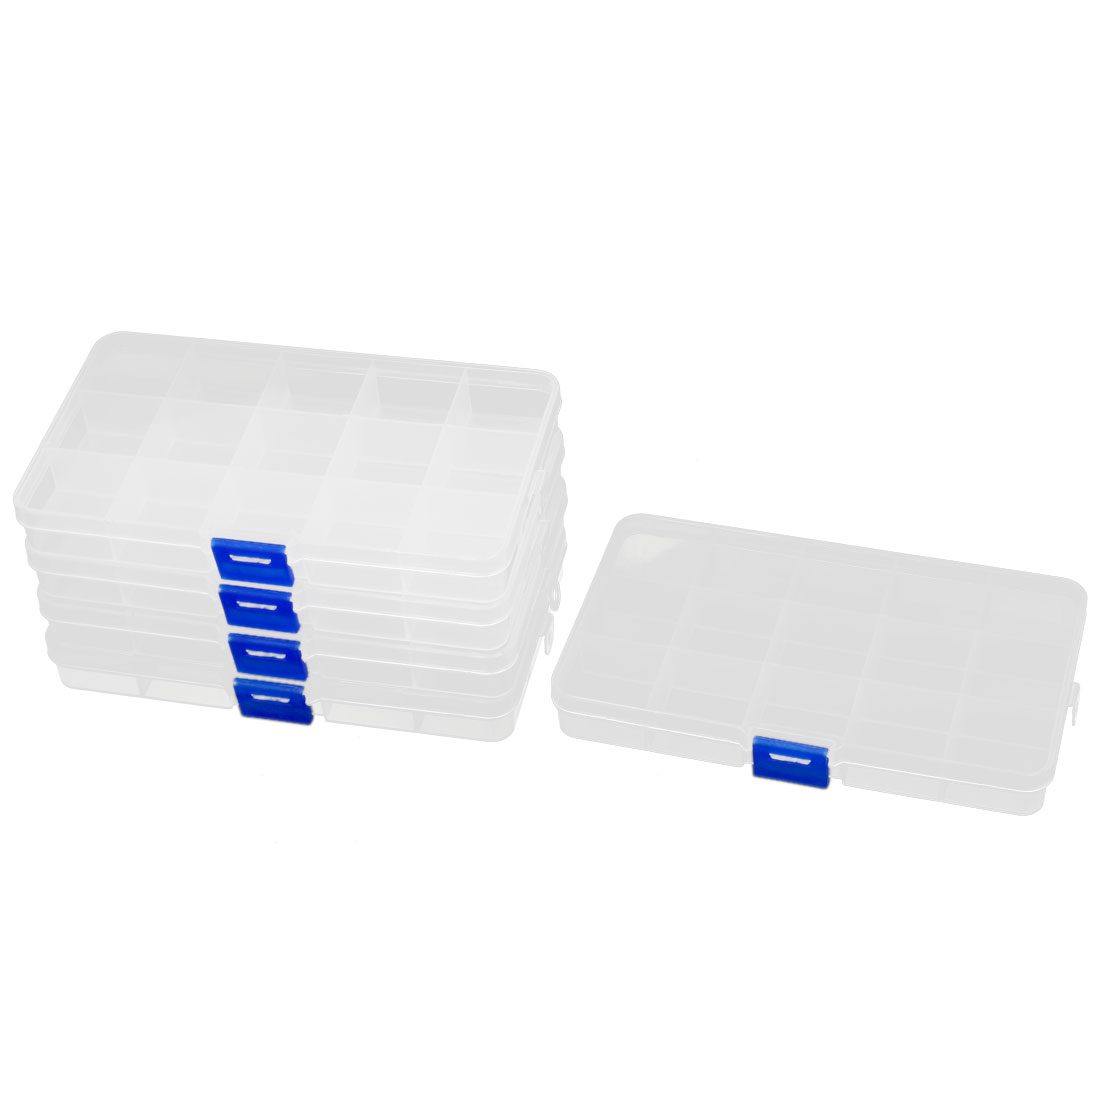 Clear Blue Plastic 15 Sections Jewelry Screws Pills Holder Storage Box 5pcs